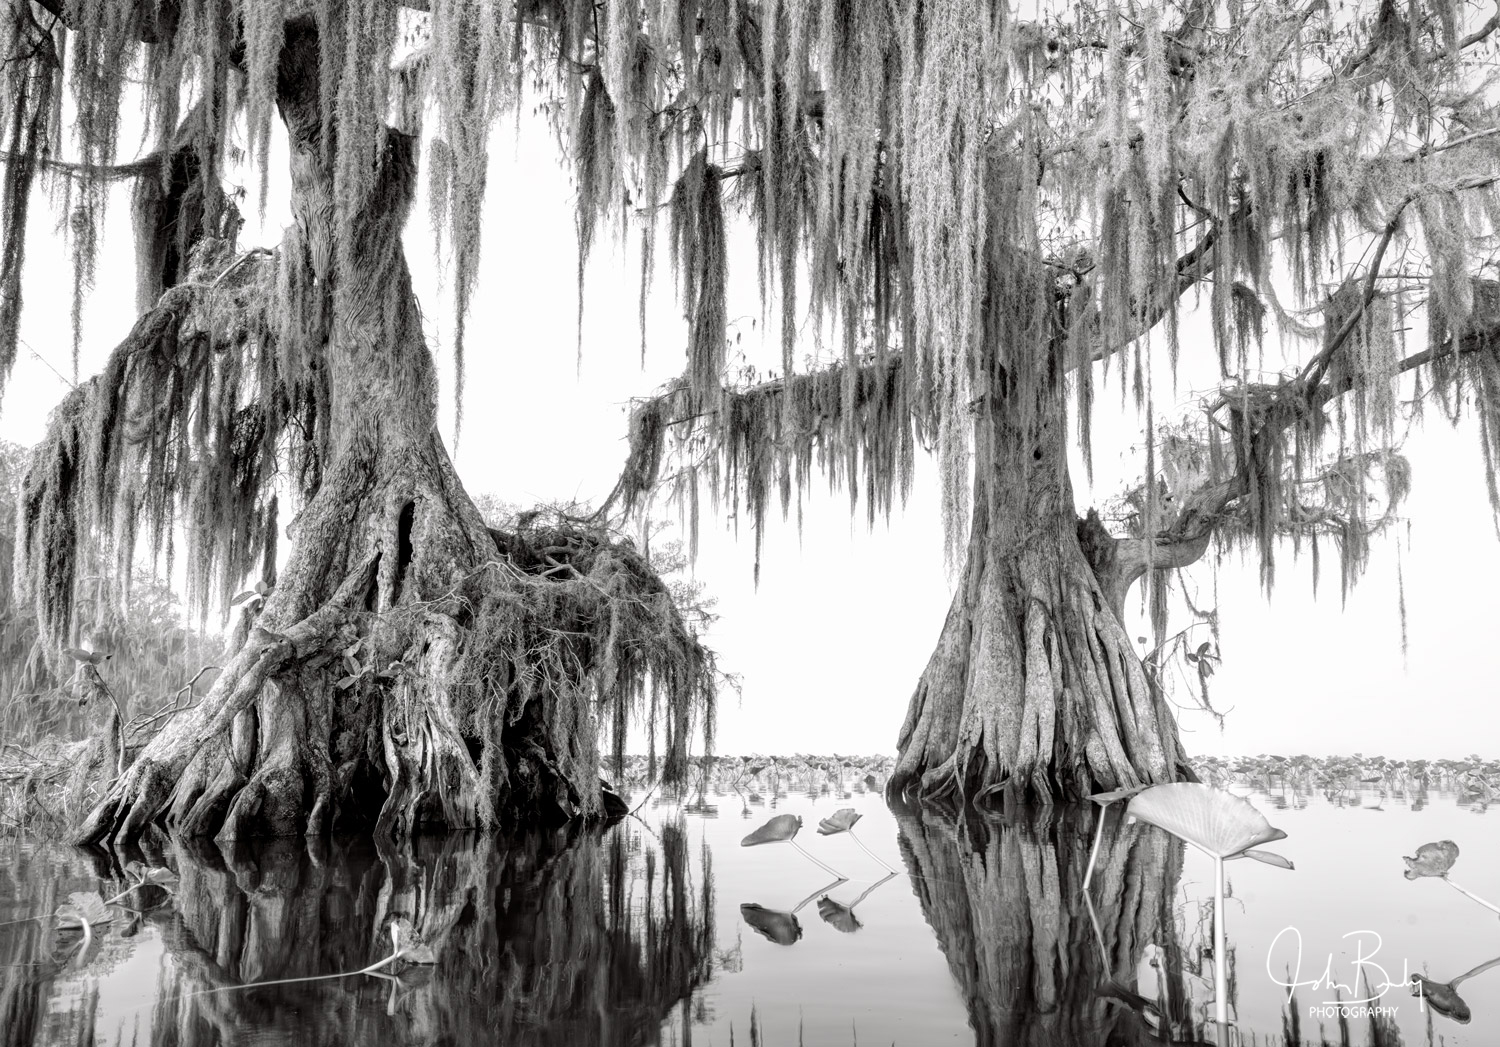 Florida has many beautiful fresh water Lakes, I'm drawn to the ones that have Cypress trees standing defiantly in the water...